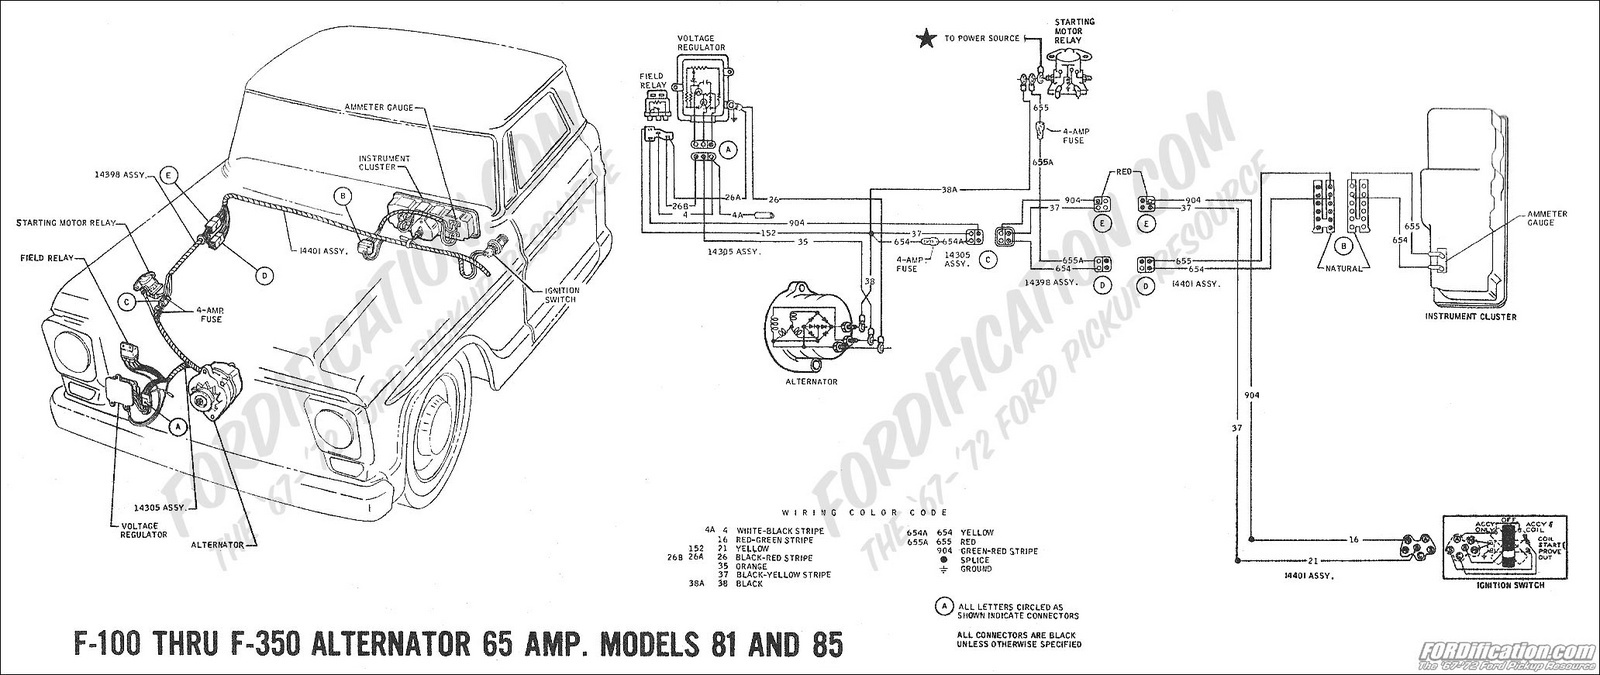 Alternator Wiring Diagram 1966 Ford Pu Diagrams Box Externally Regulated F 100 Questions I Have A 73 No Power To The S John Deere